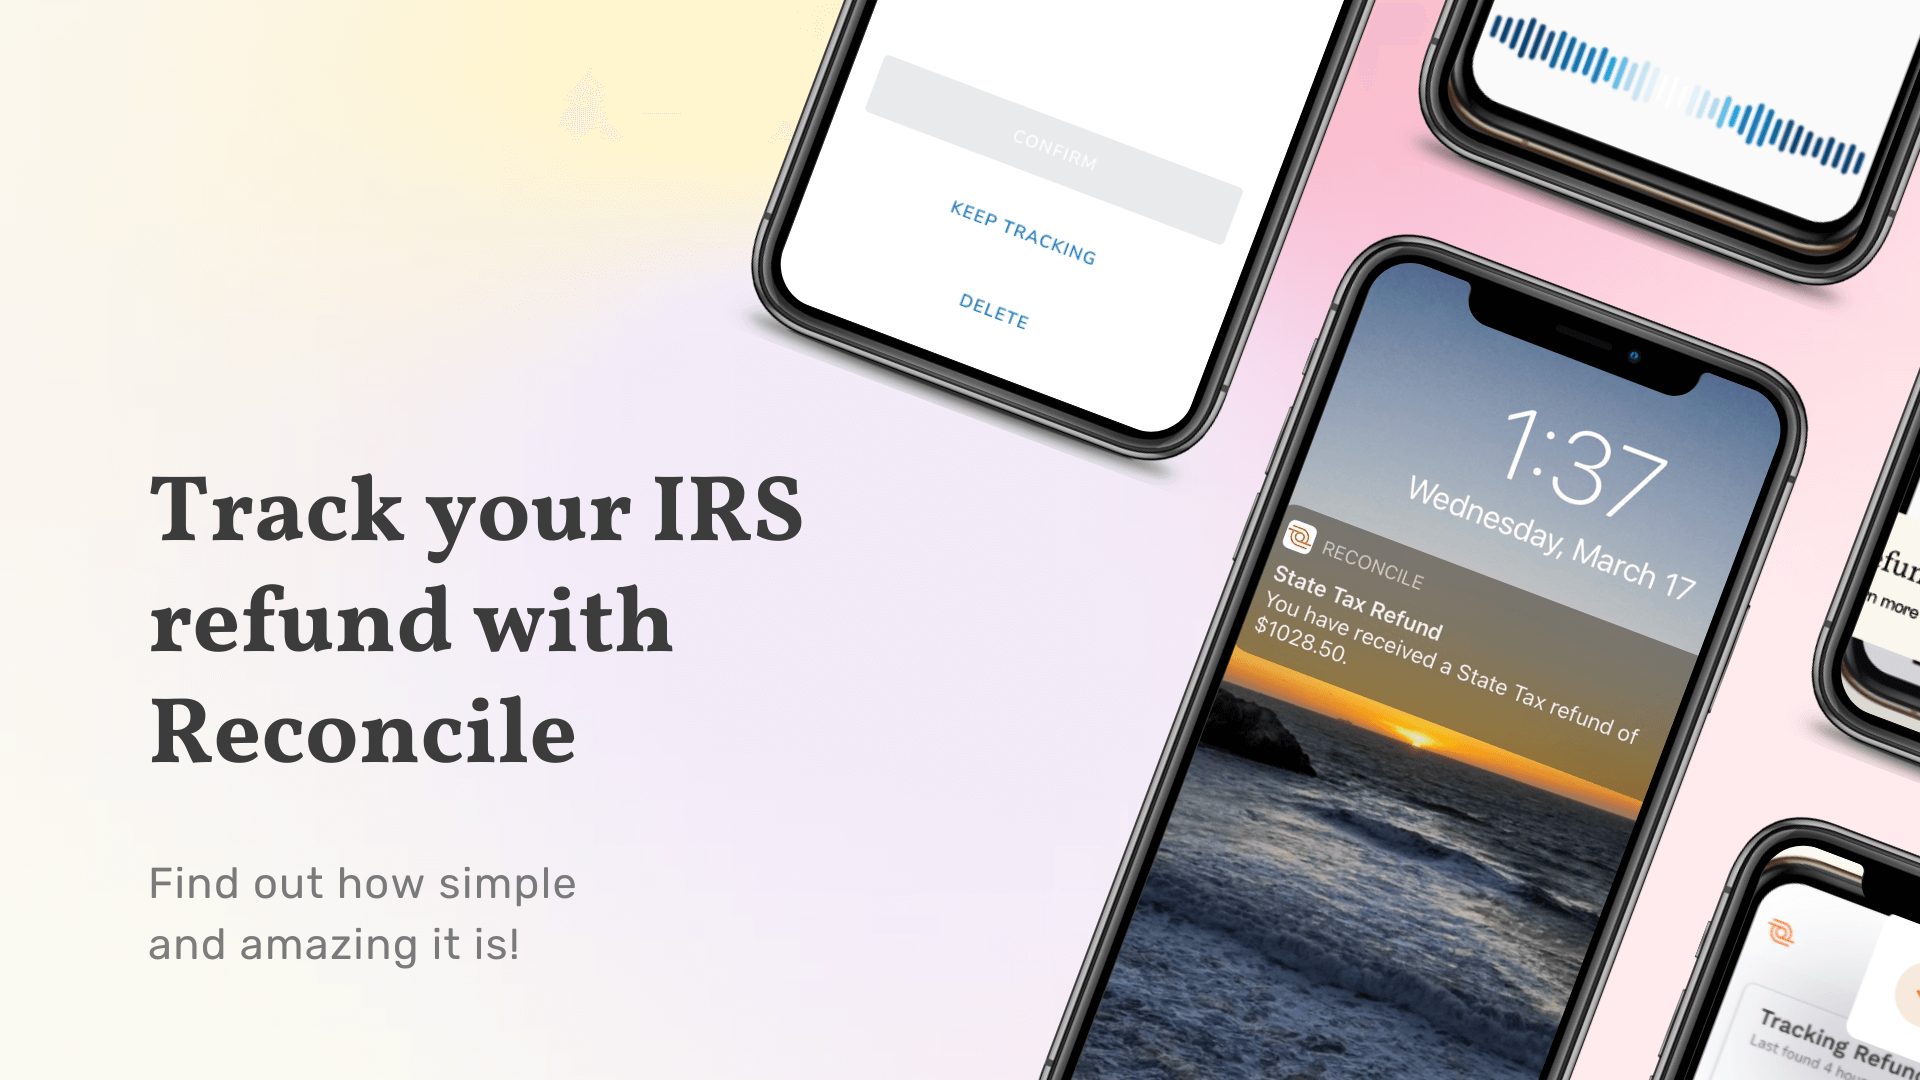 IRS Tax Refund: When will I get it and how to track it with Reconcile?